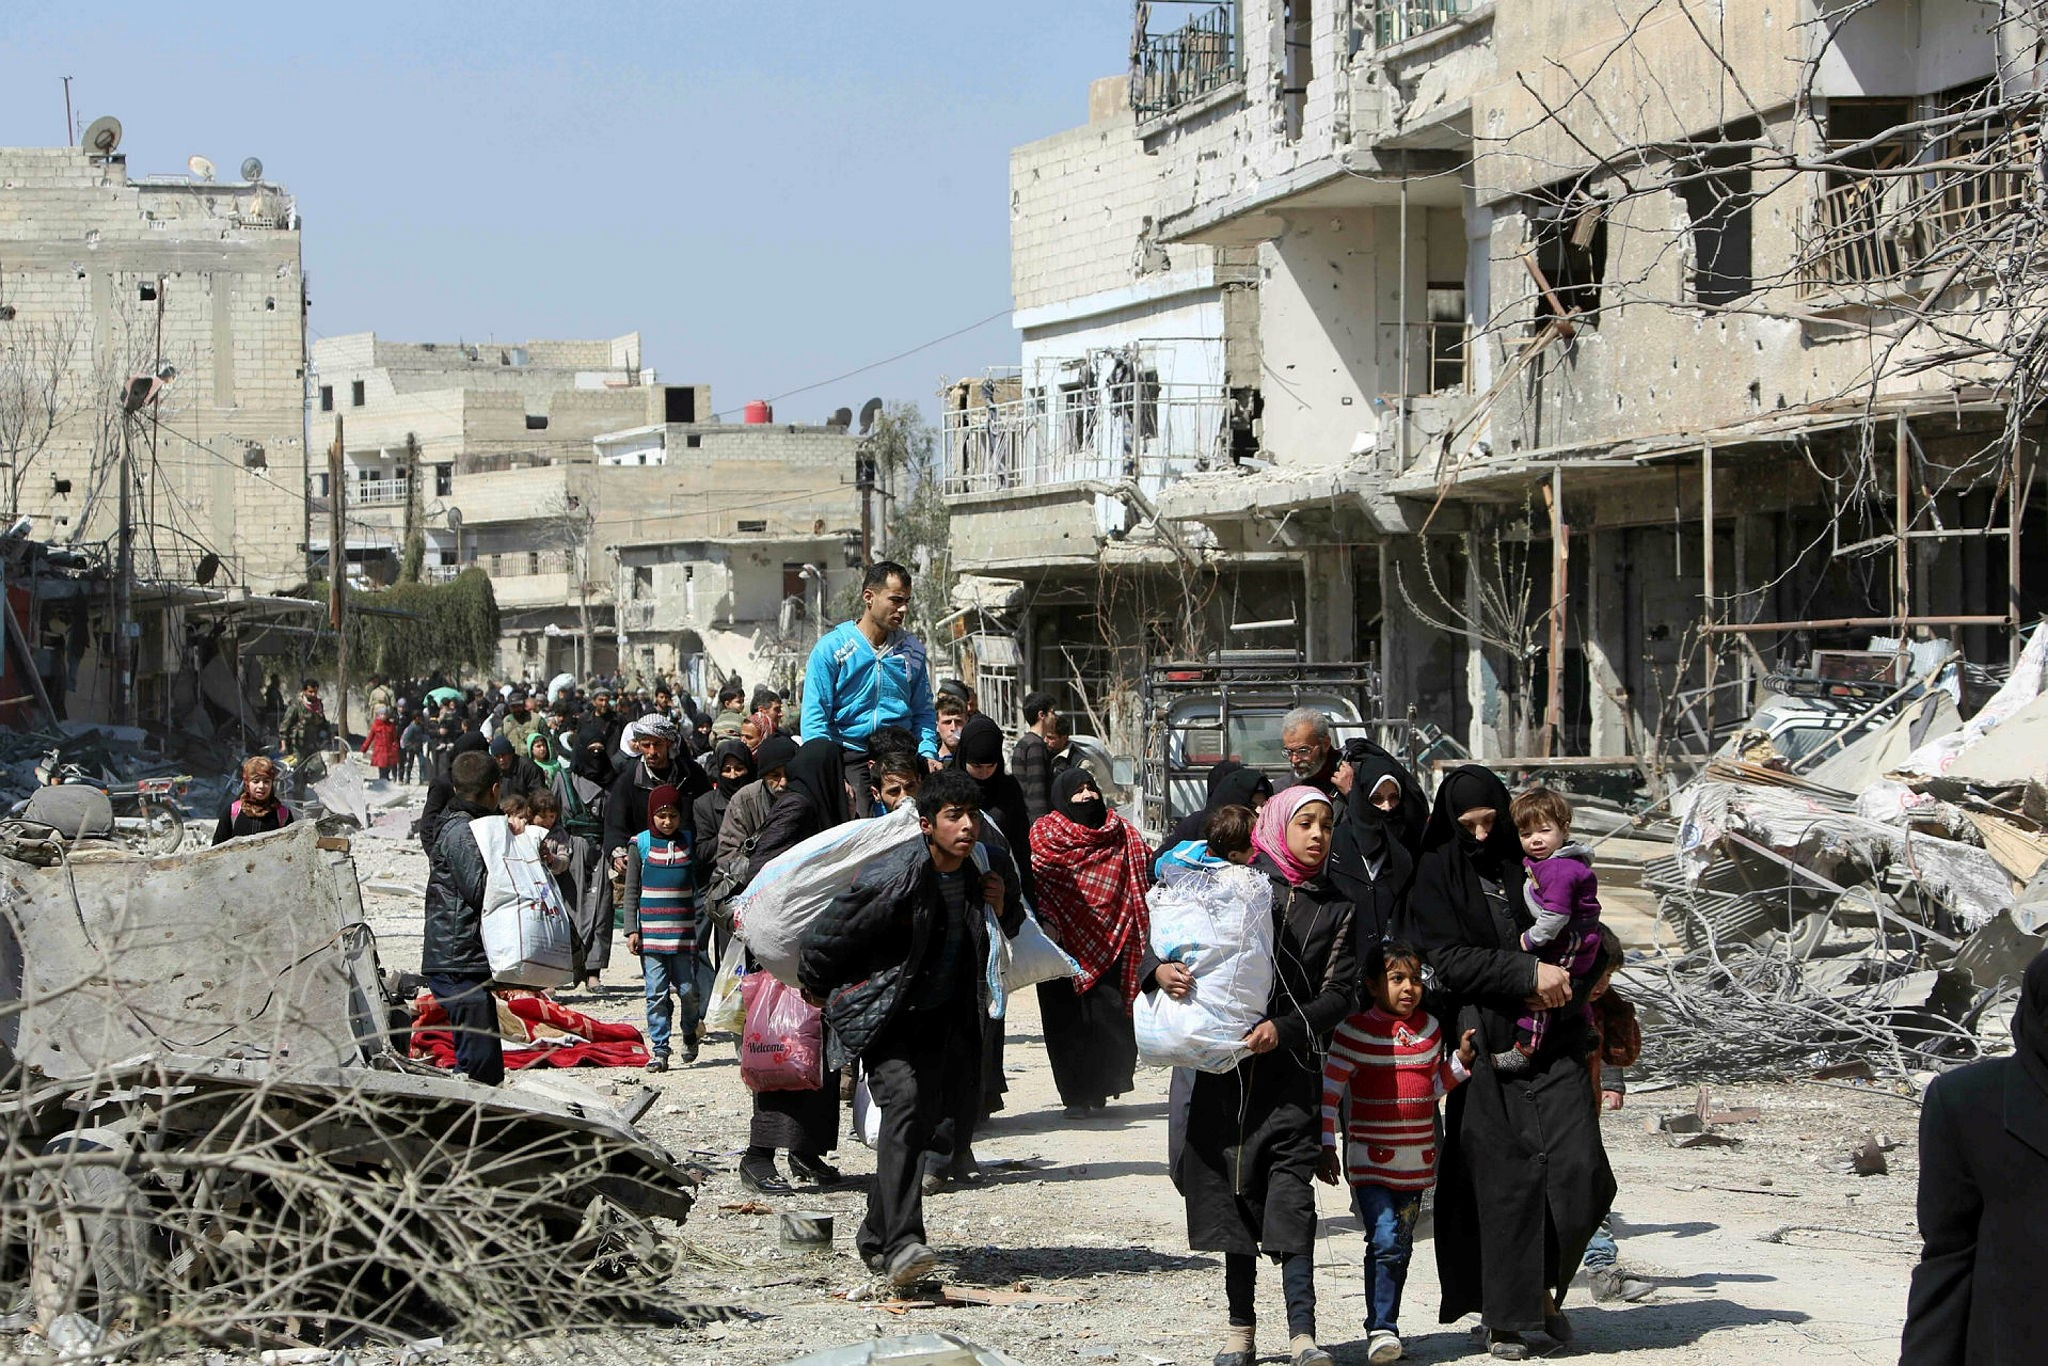 Syrian civilians evacuate the town of Jisreen in Eastern Ghouta, on the outskirts of the capital Damascus, to areas under government control, March 17.